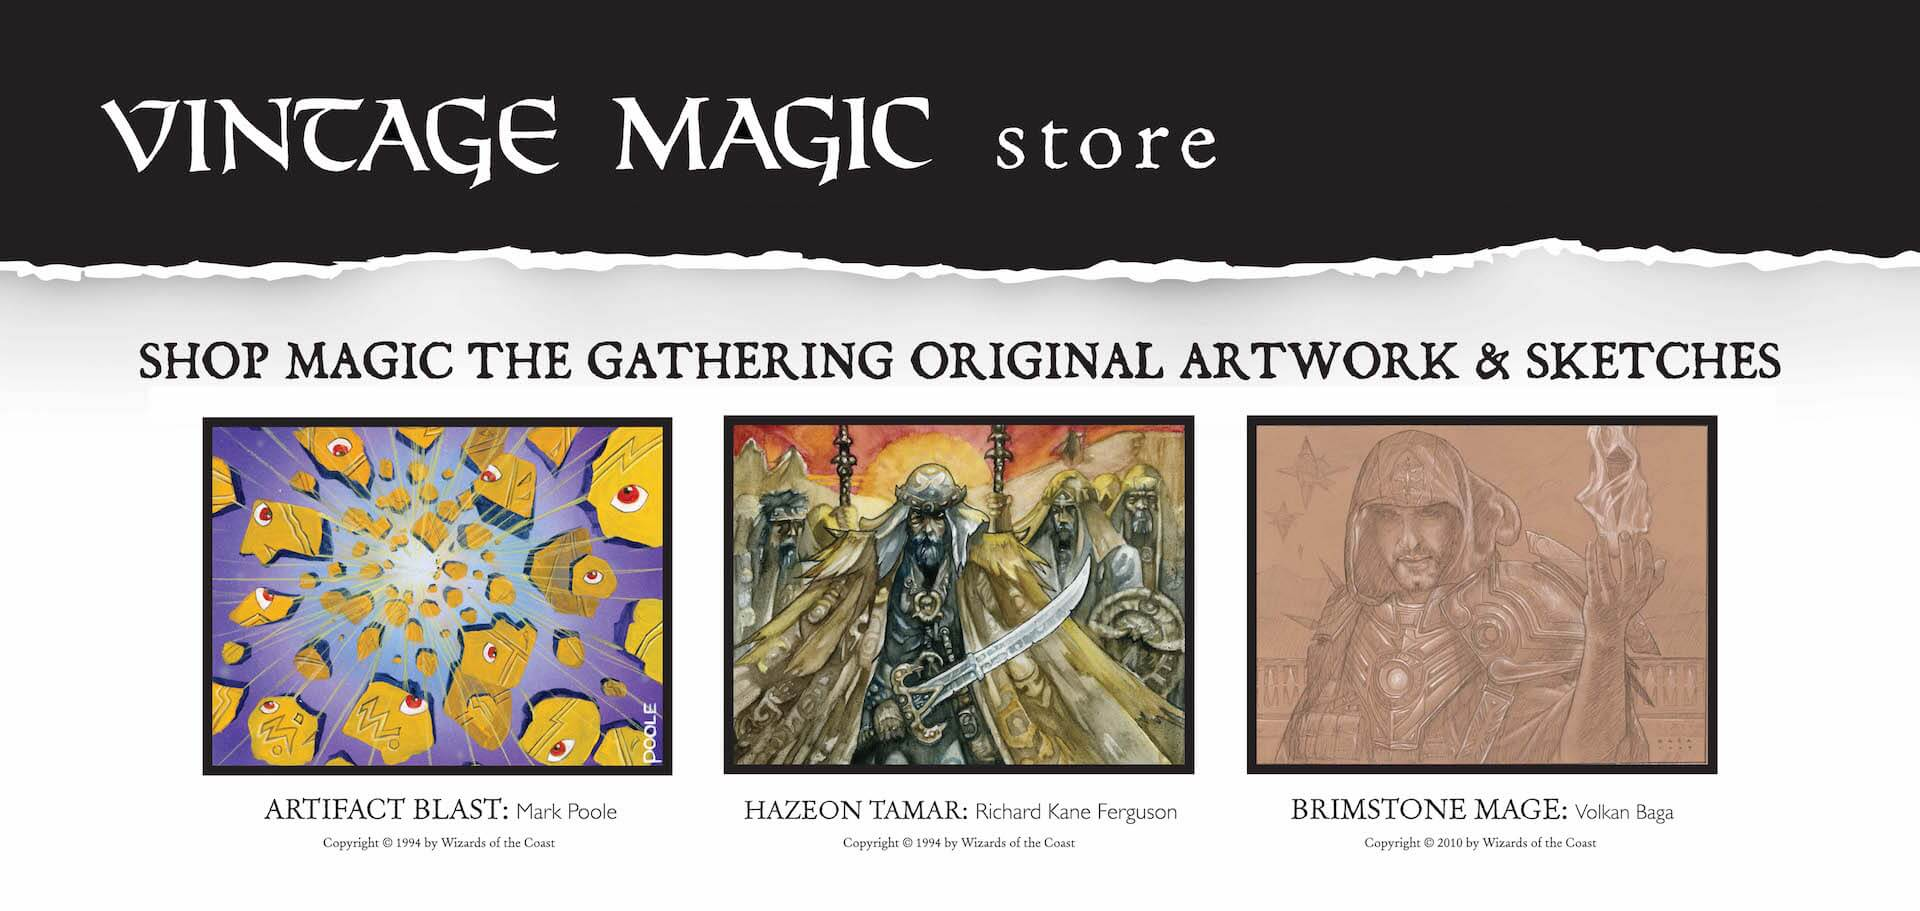 Art & Sketches for sale on Vintage Magic Store